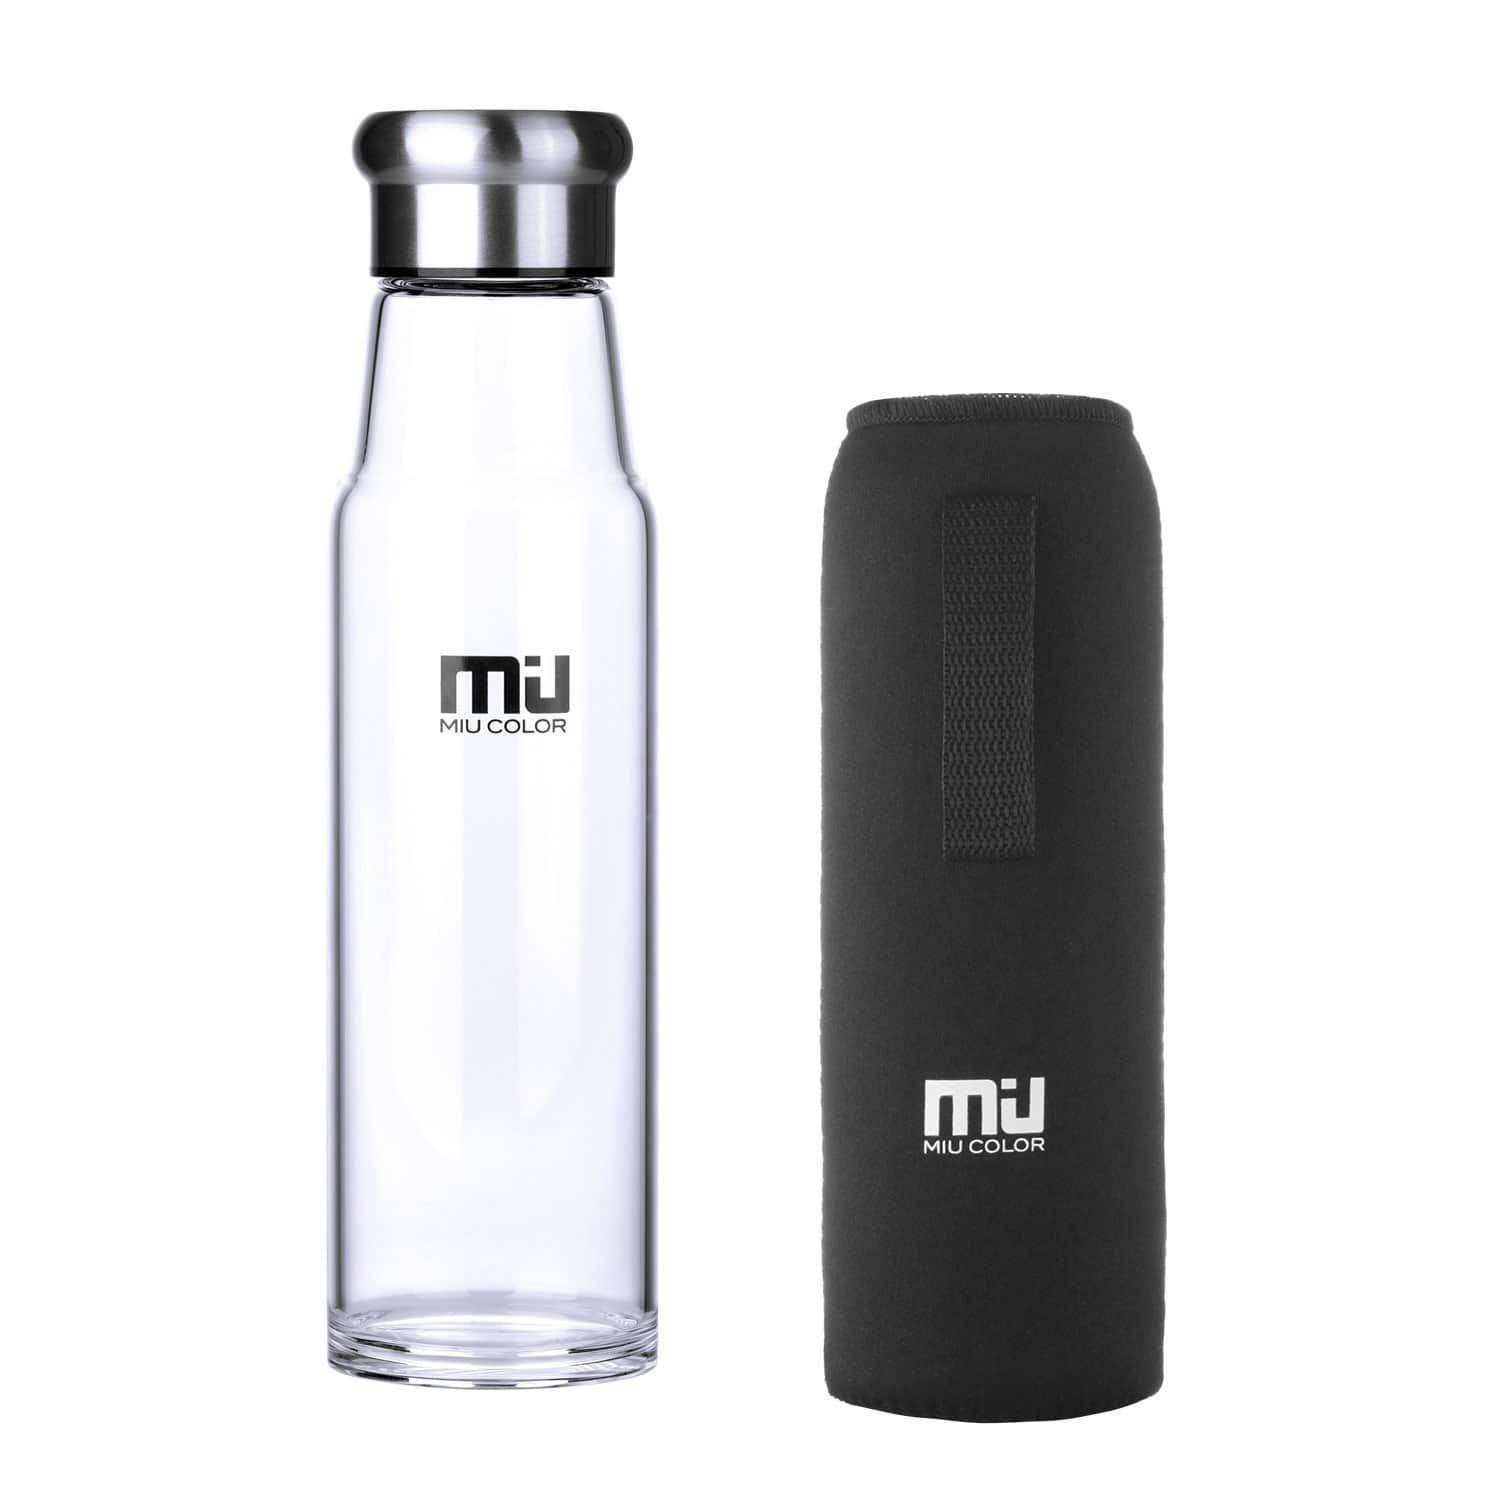 24.5oz MIU COLOR Glass Water Bottle w/ Nylon Sleeve (various colors) $10 + Free Shipping & More